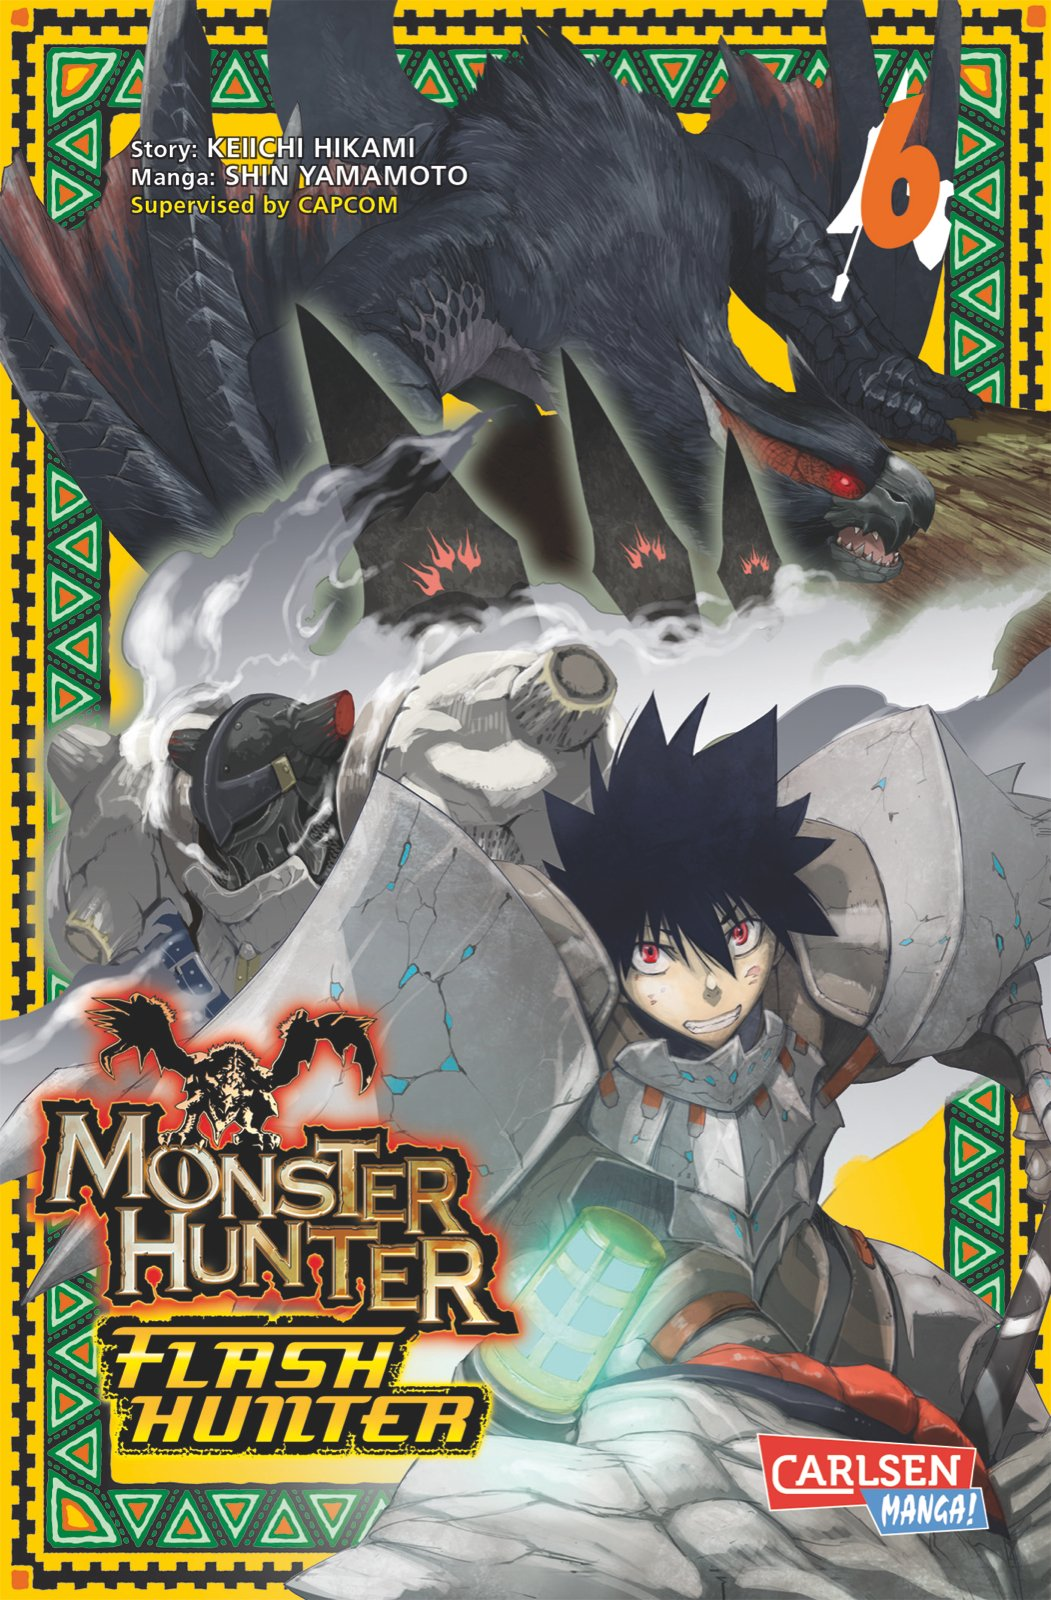 Monster Hunter Flash Hunter, Band 6